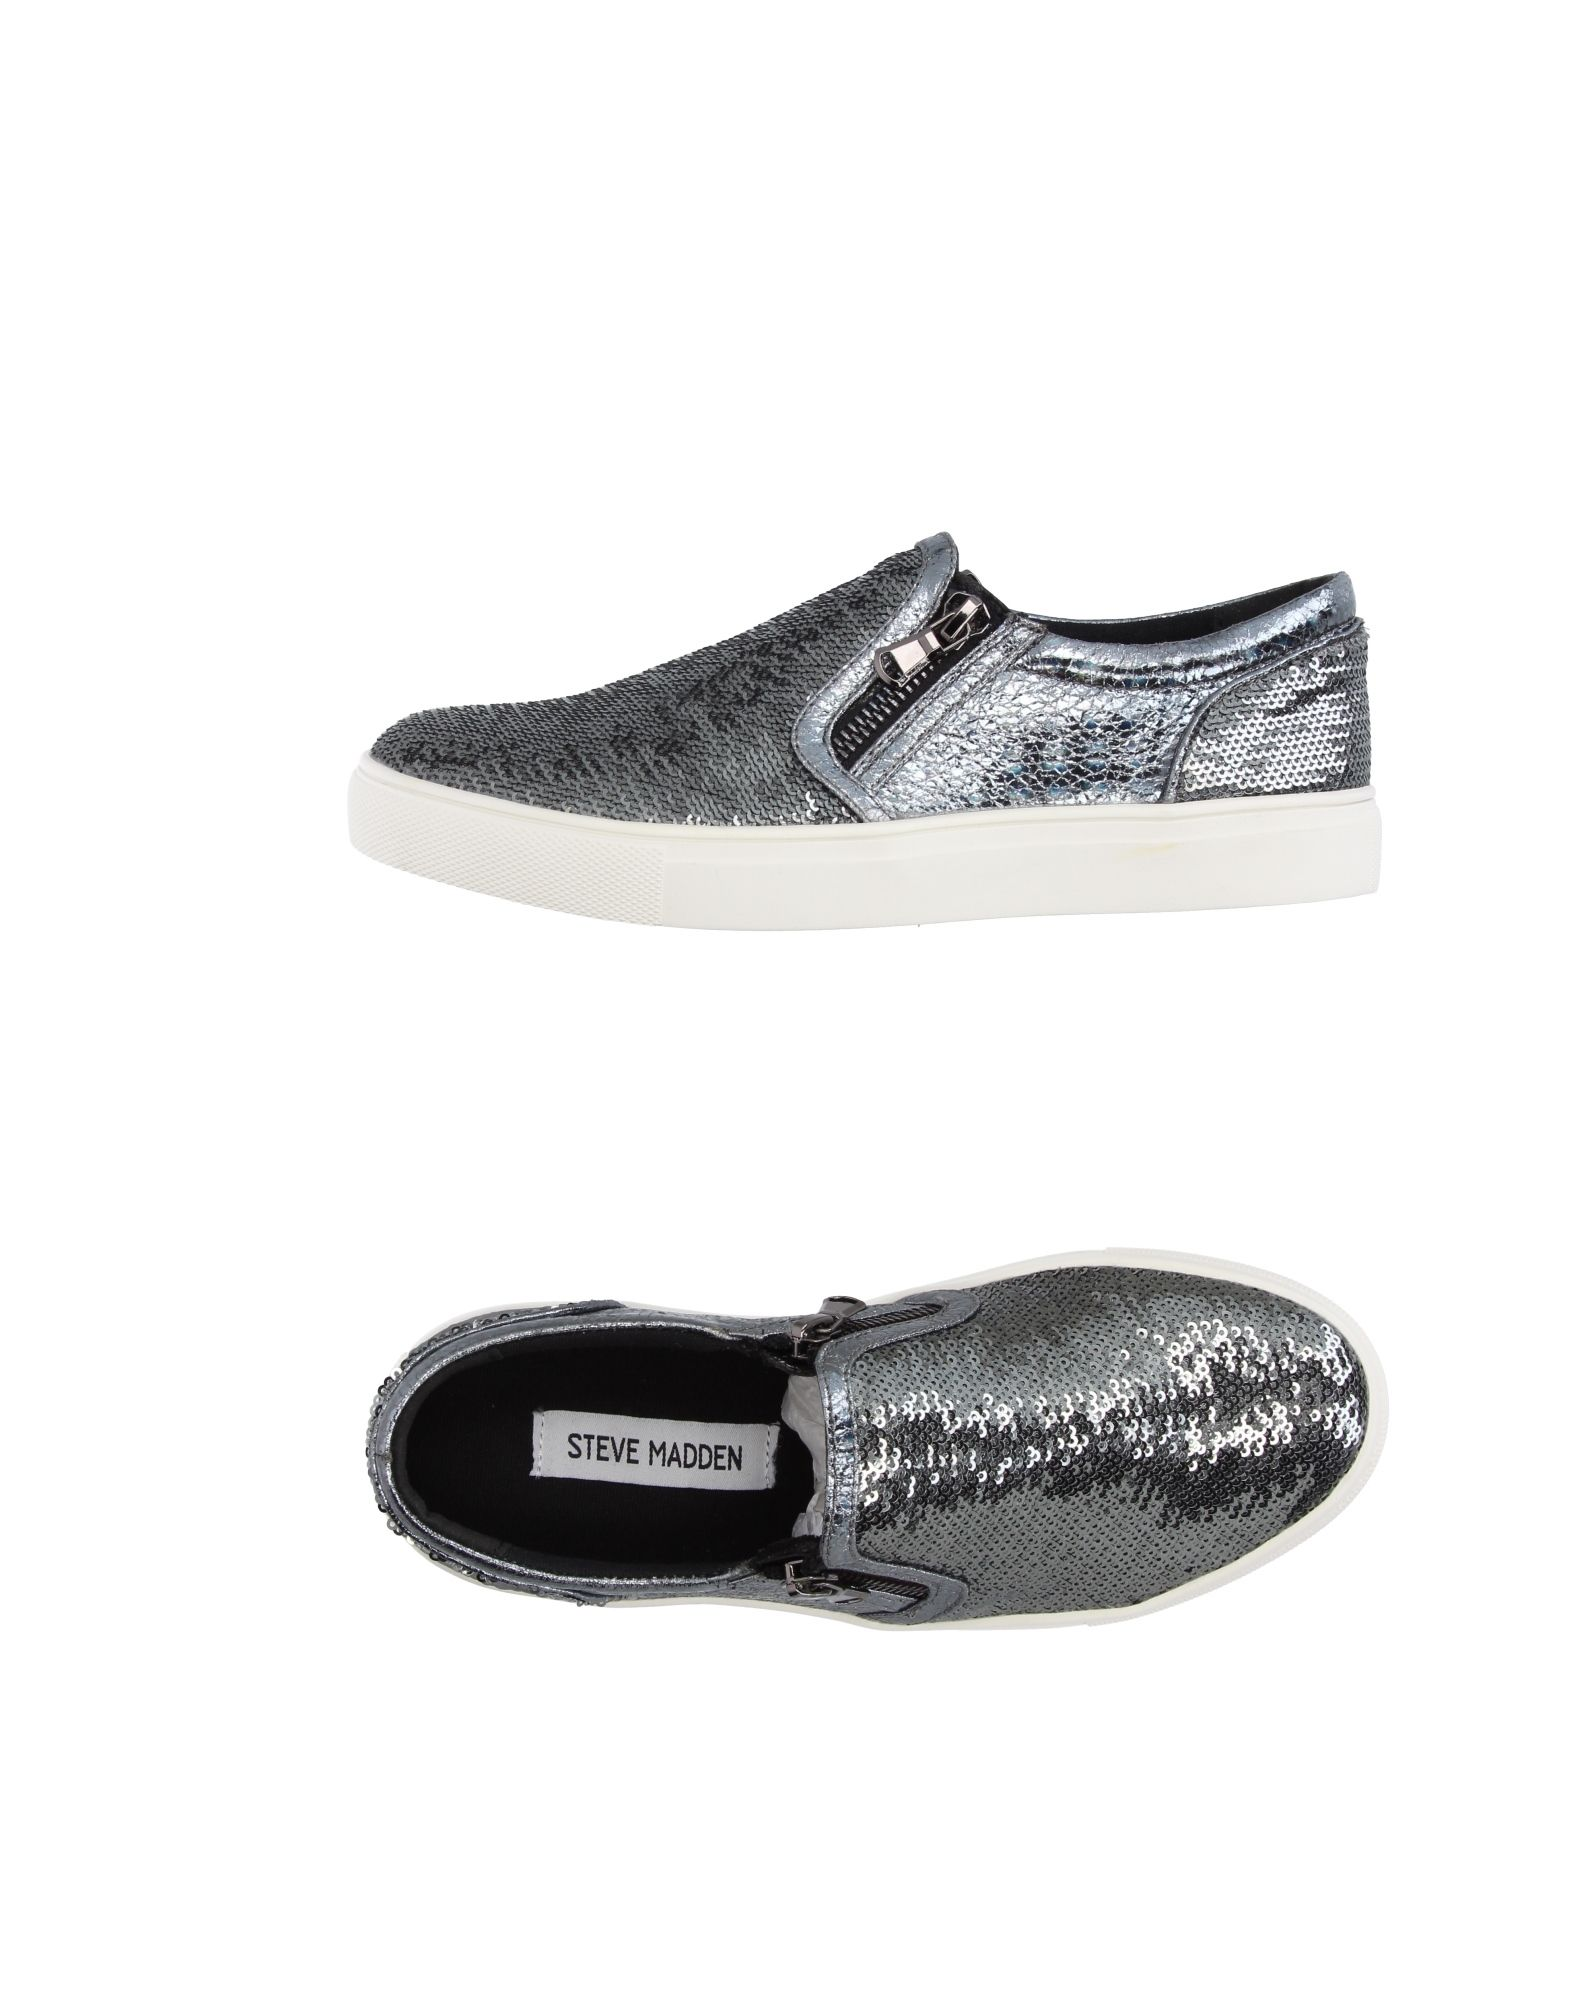 Steve Madden Sneakers - Women Steve Madden Sneakers online on 11212557QD  United Kingdom - 11212557QD on 67ea0e